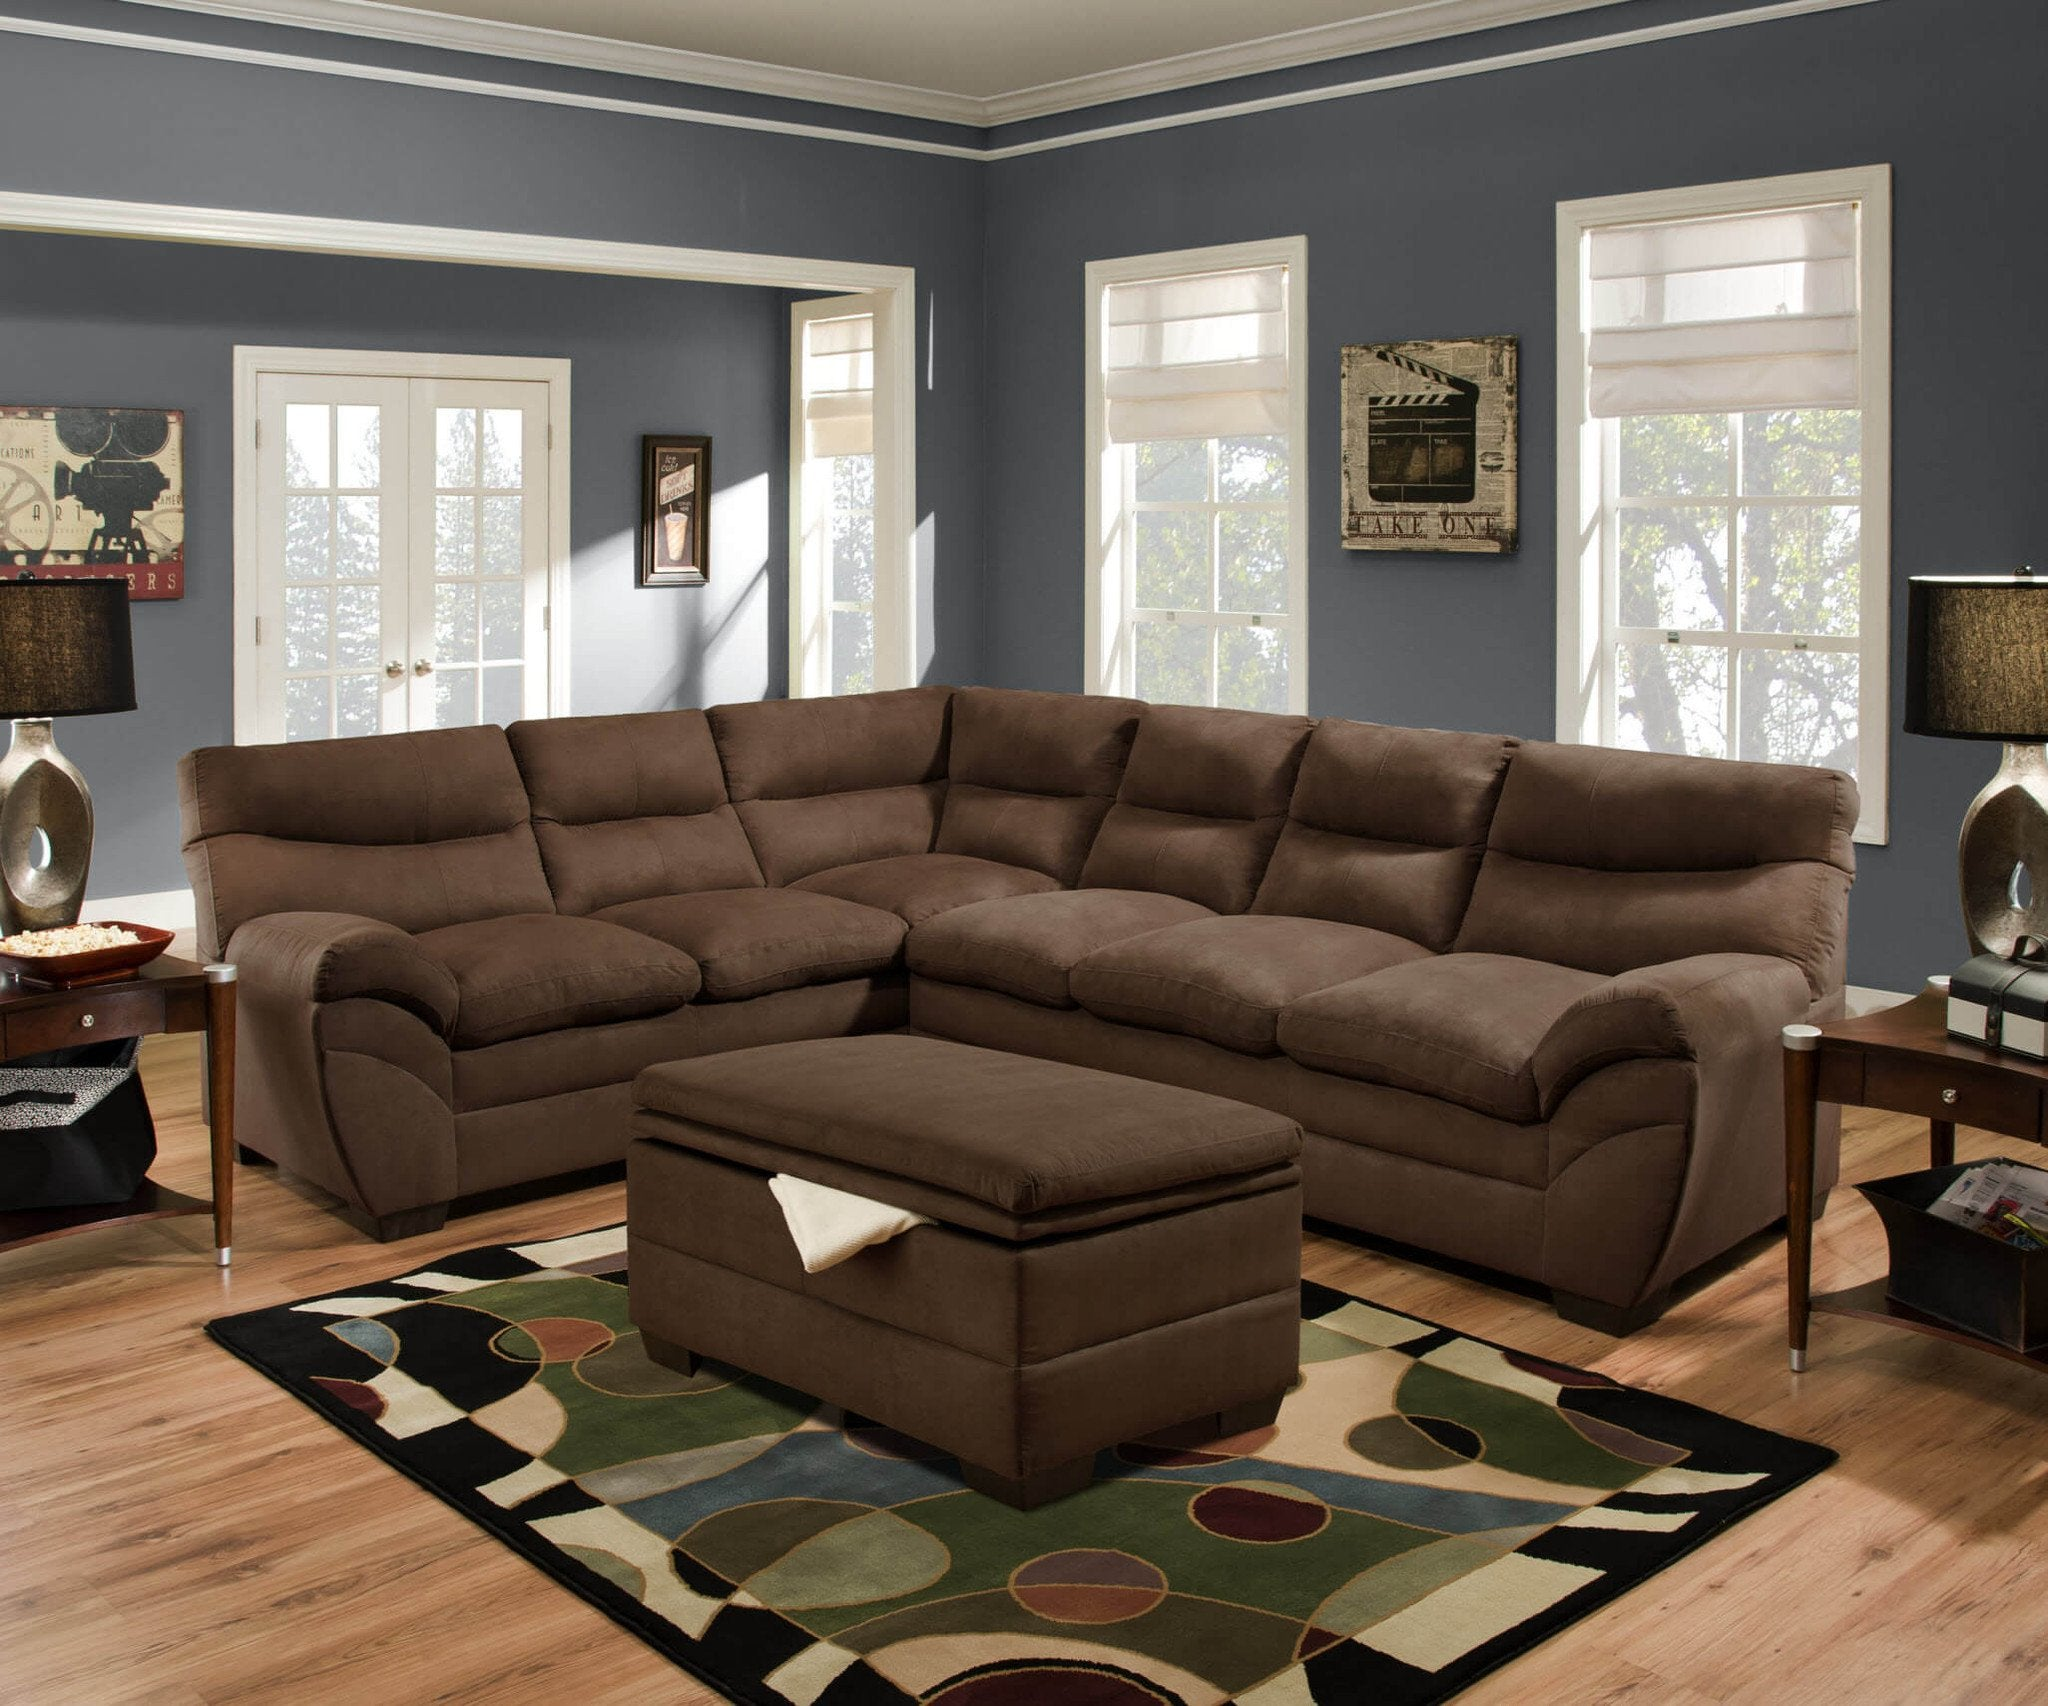 Luna Chocolate Sectional By Simmons Beautyrest For The Home Store # Muebles Luan Arbo